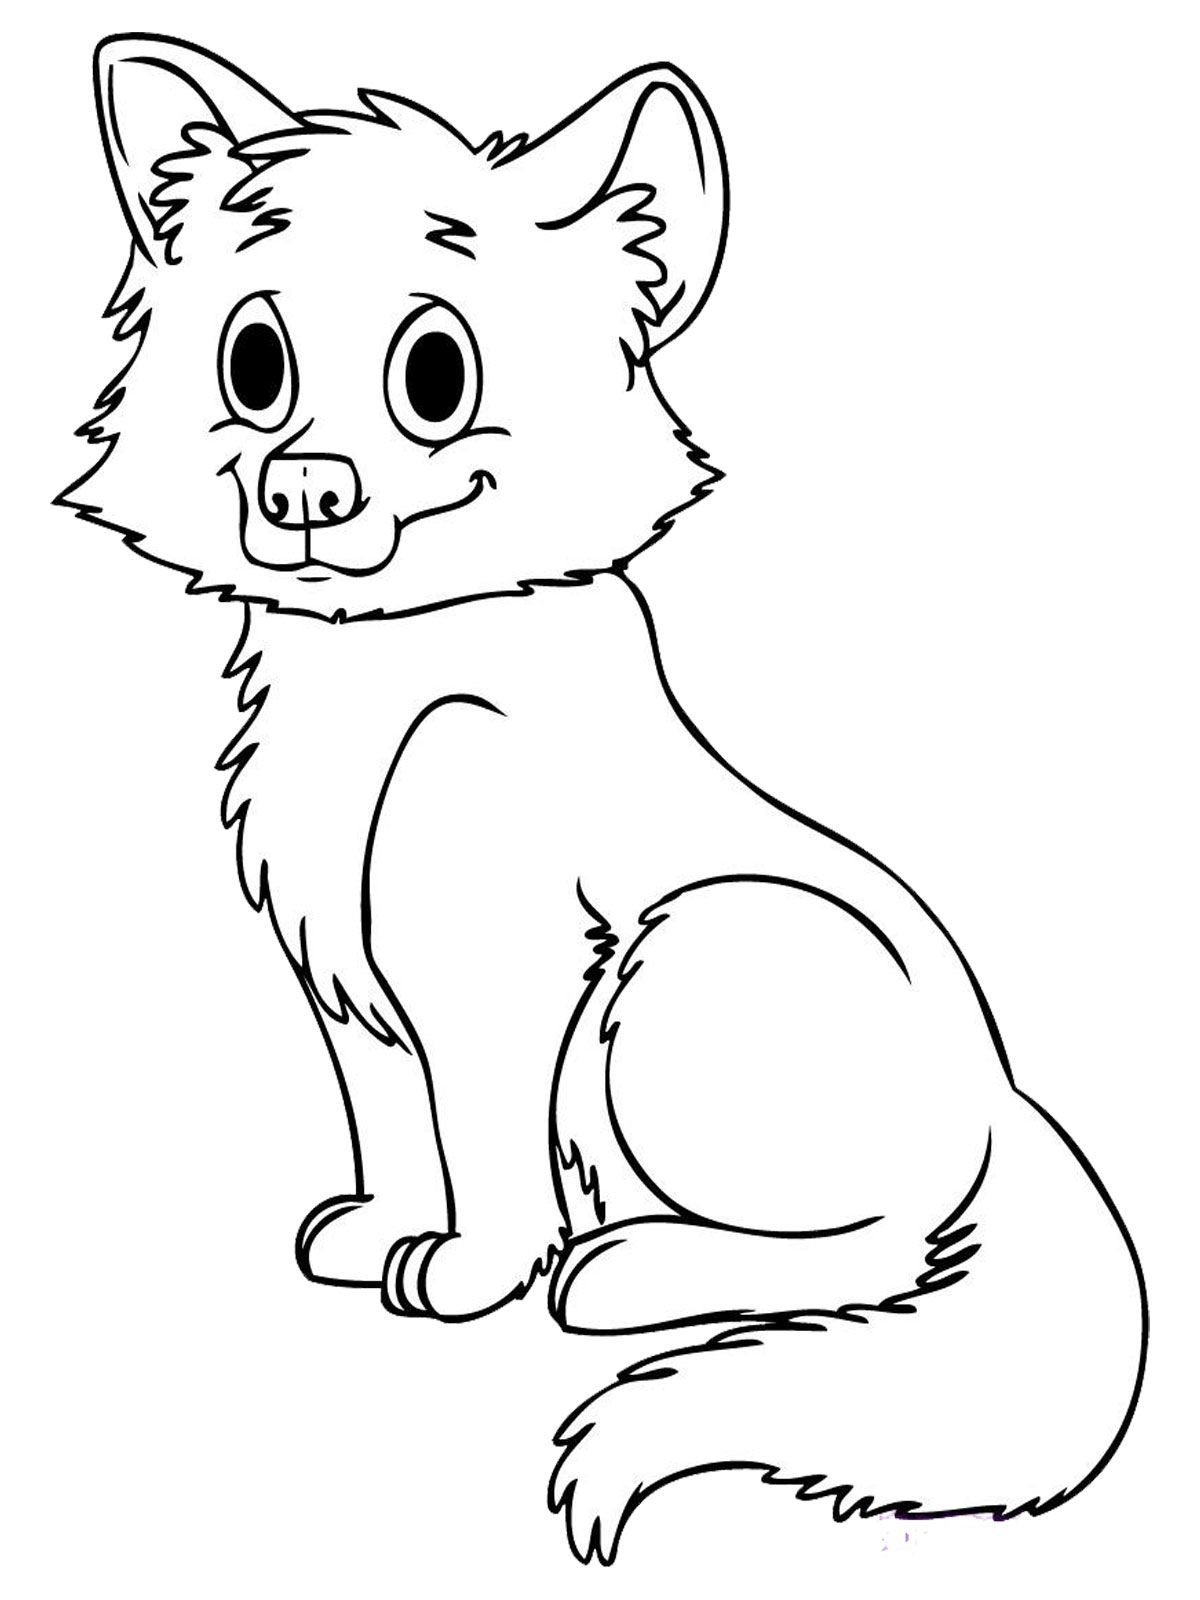 wolf coloring pages for kids   Download all baby animals coloring ...